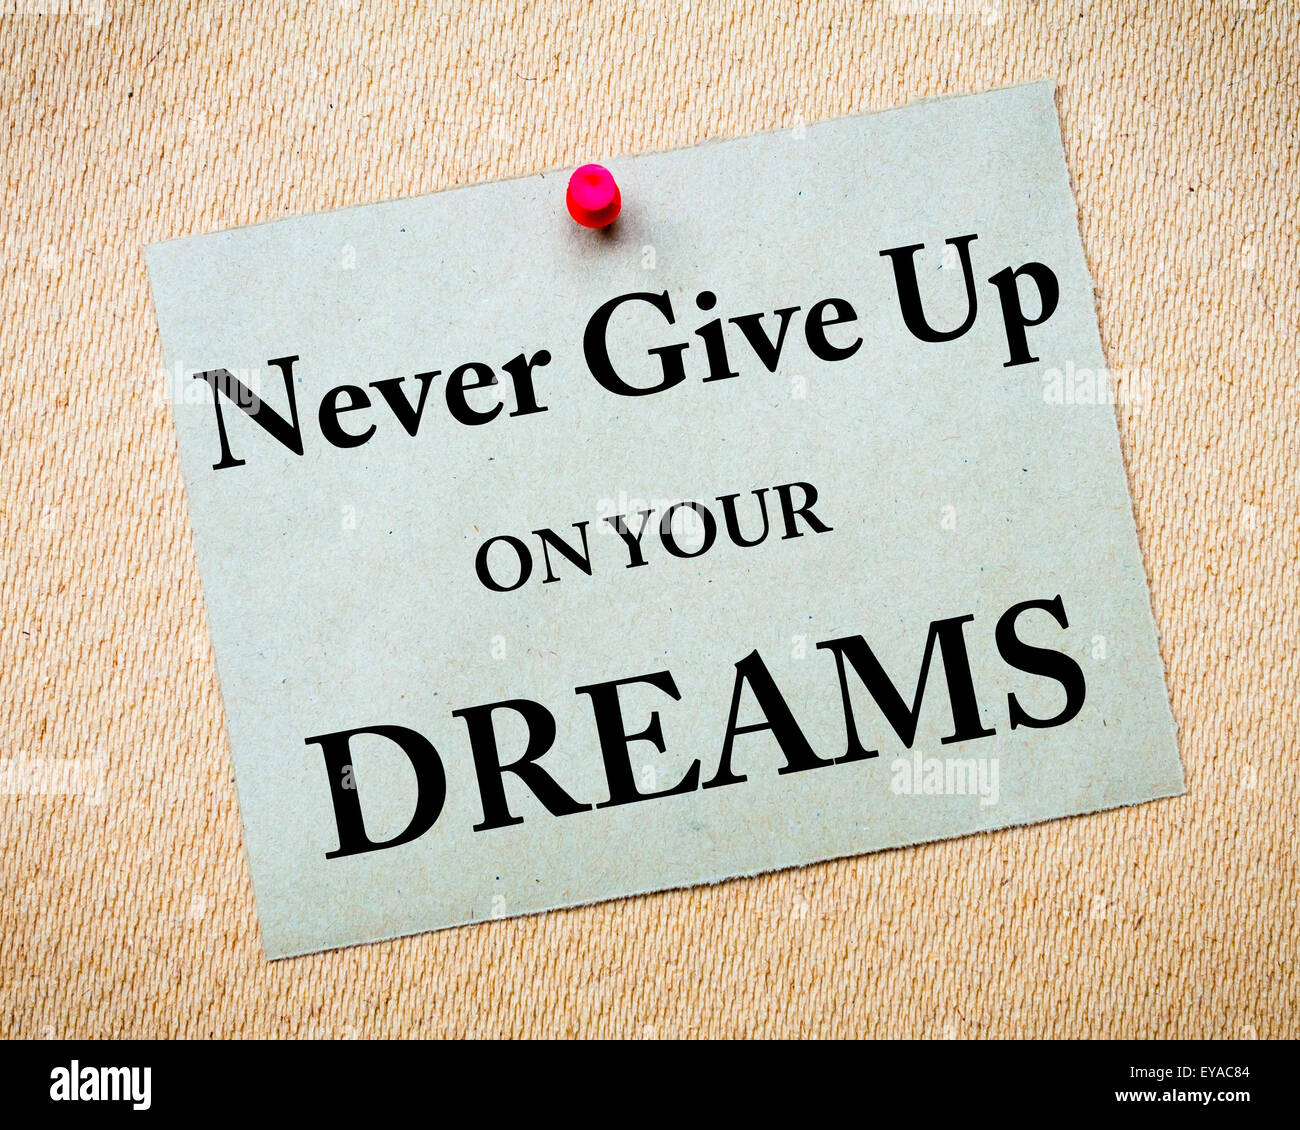 Persistence Motivational Quotes: Never Give Up On Your Dreams Message Written On Recycled